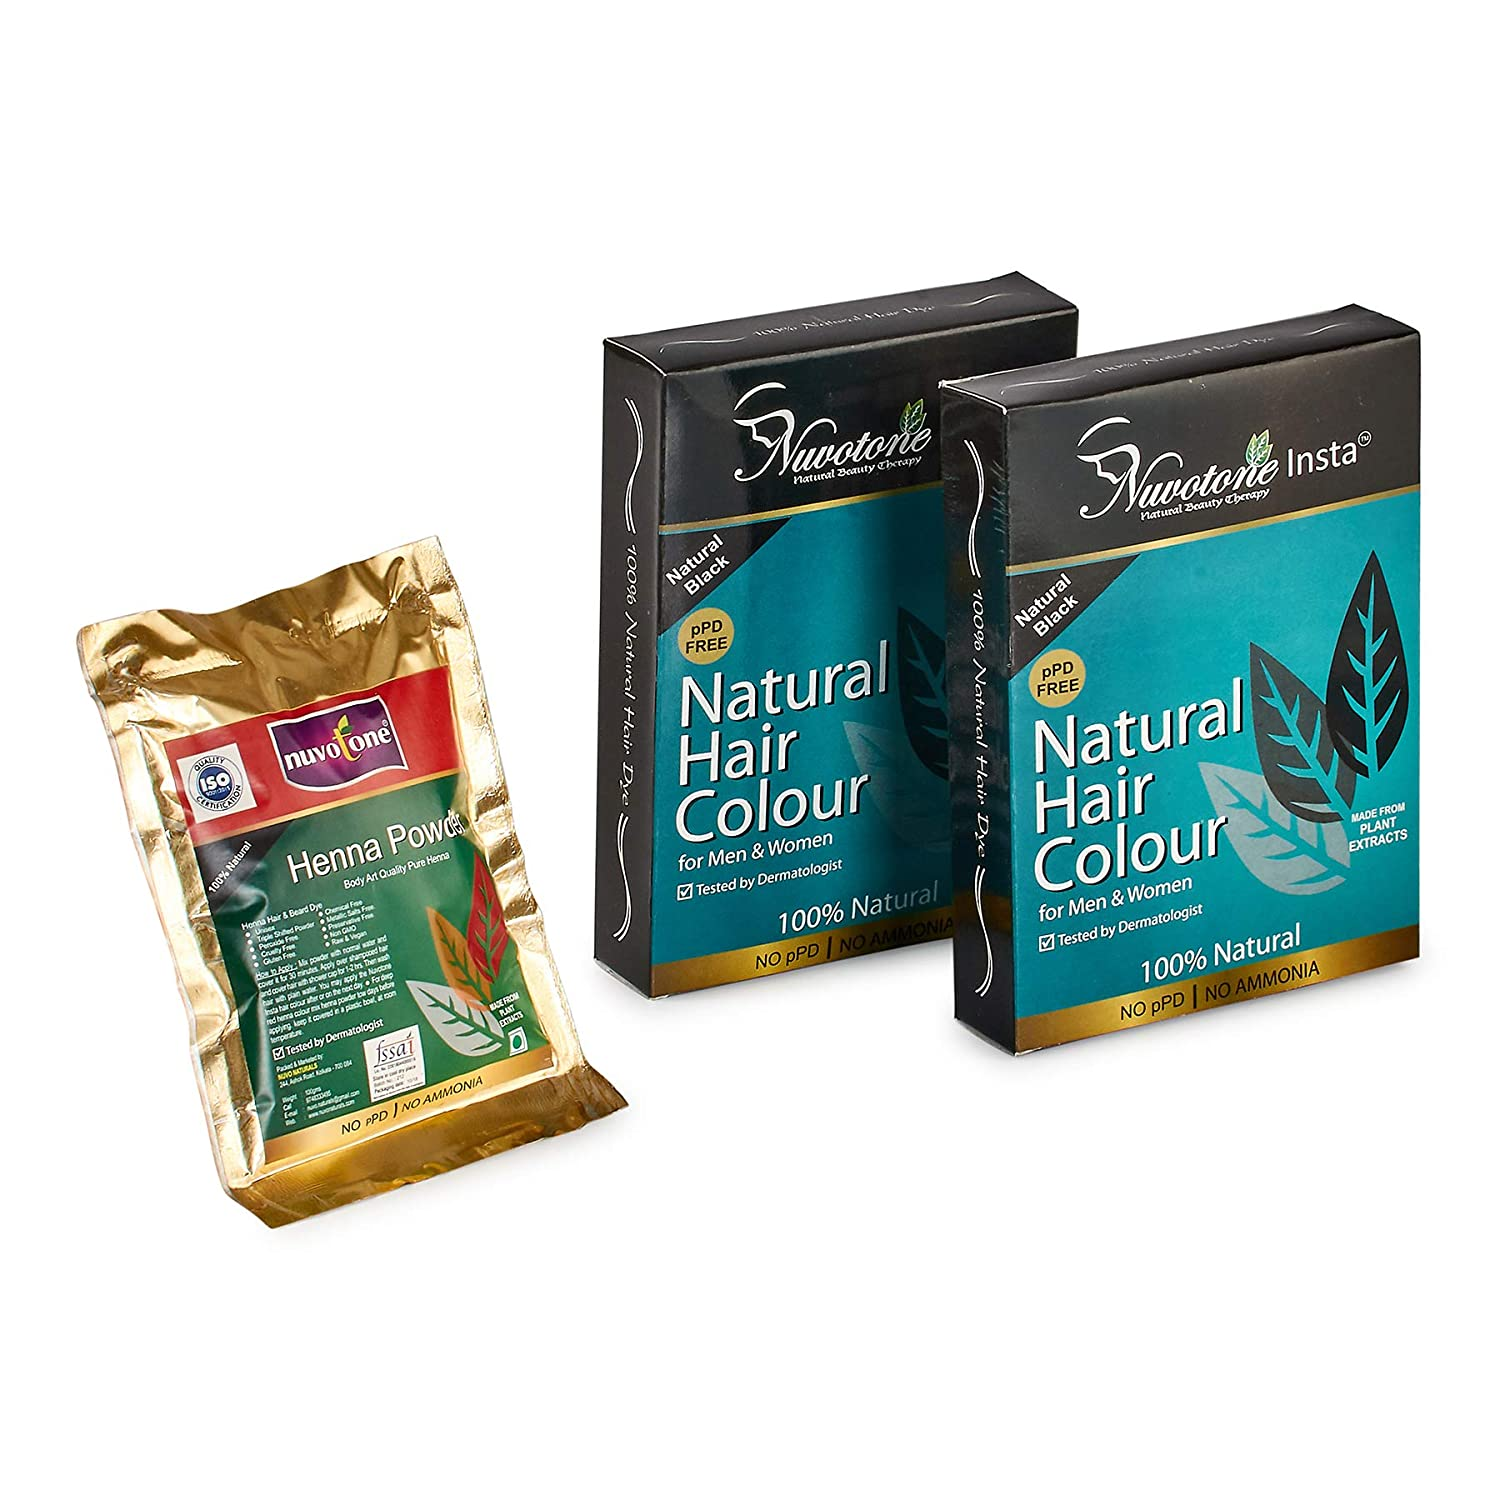 Buy Nuvotone Ppd And Ammonia Free Ayurvedic Natural Black Hair Color Kit Insta Natural Hair Color Natural Black Pack Of 2 And Body Art Quality Henna Powder Online At Low Prices In